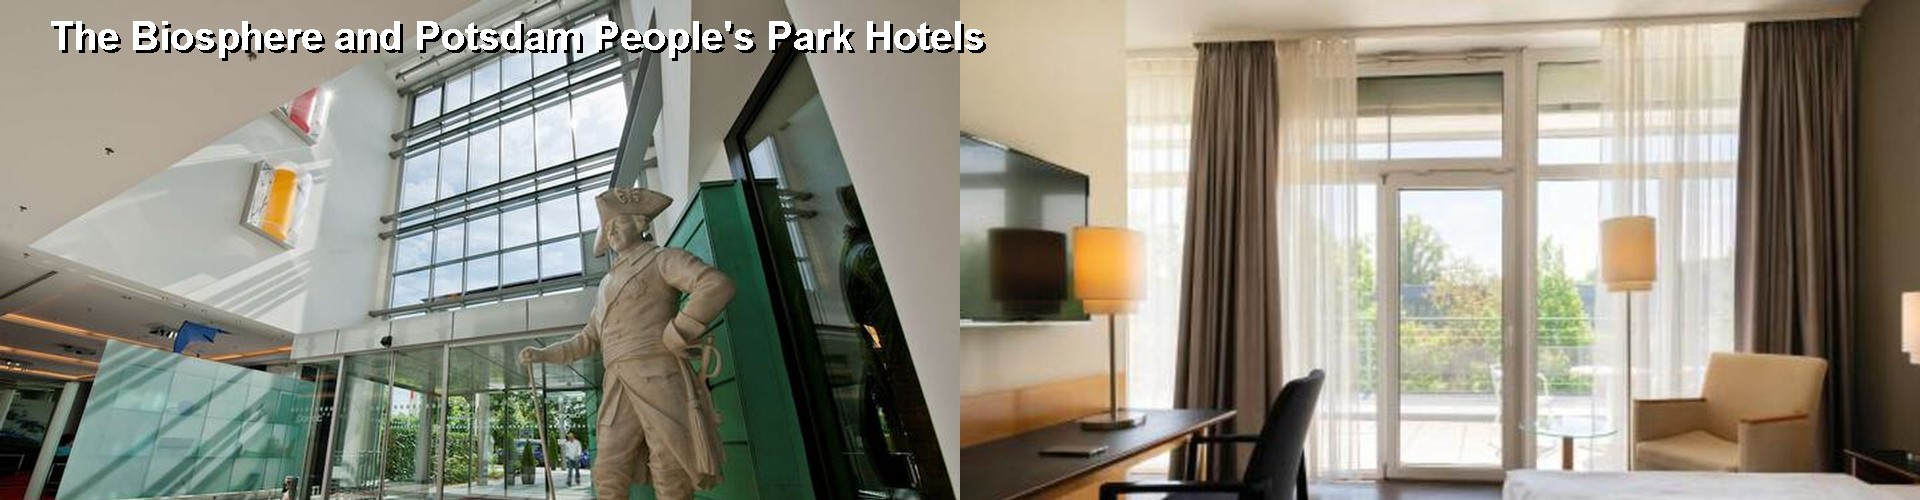 5 Best Hotels near The Biosphere and Potsdam People's Park